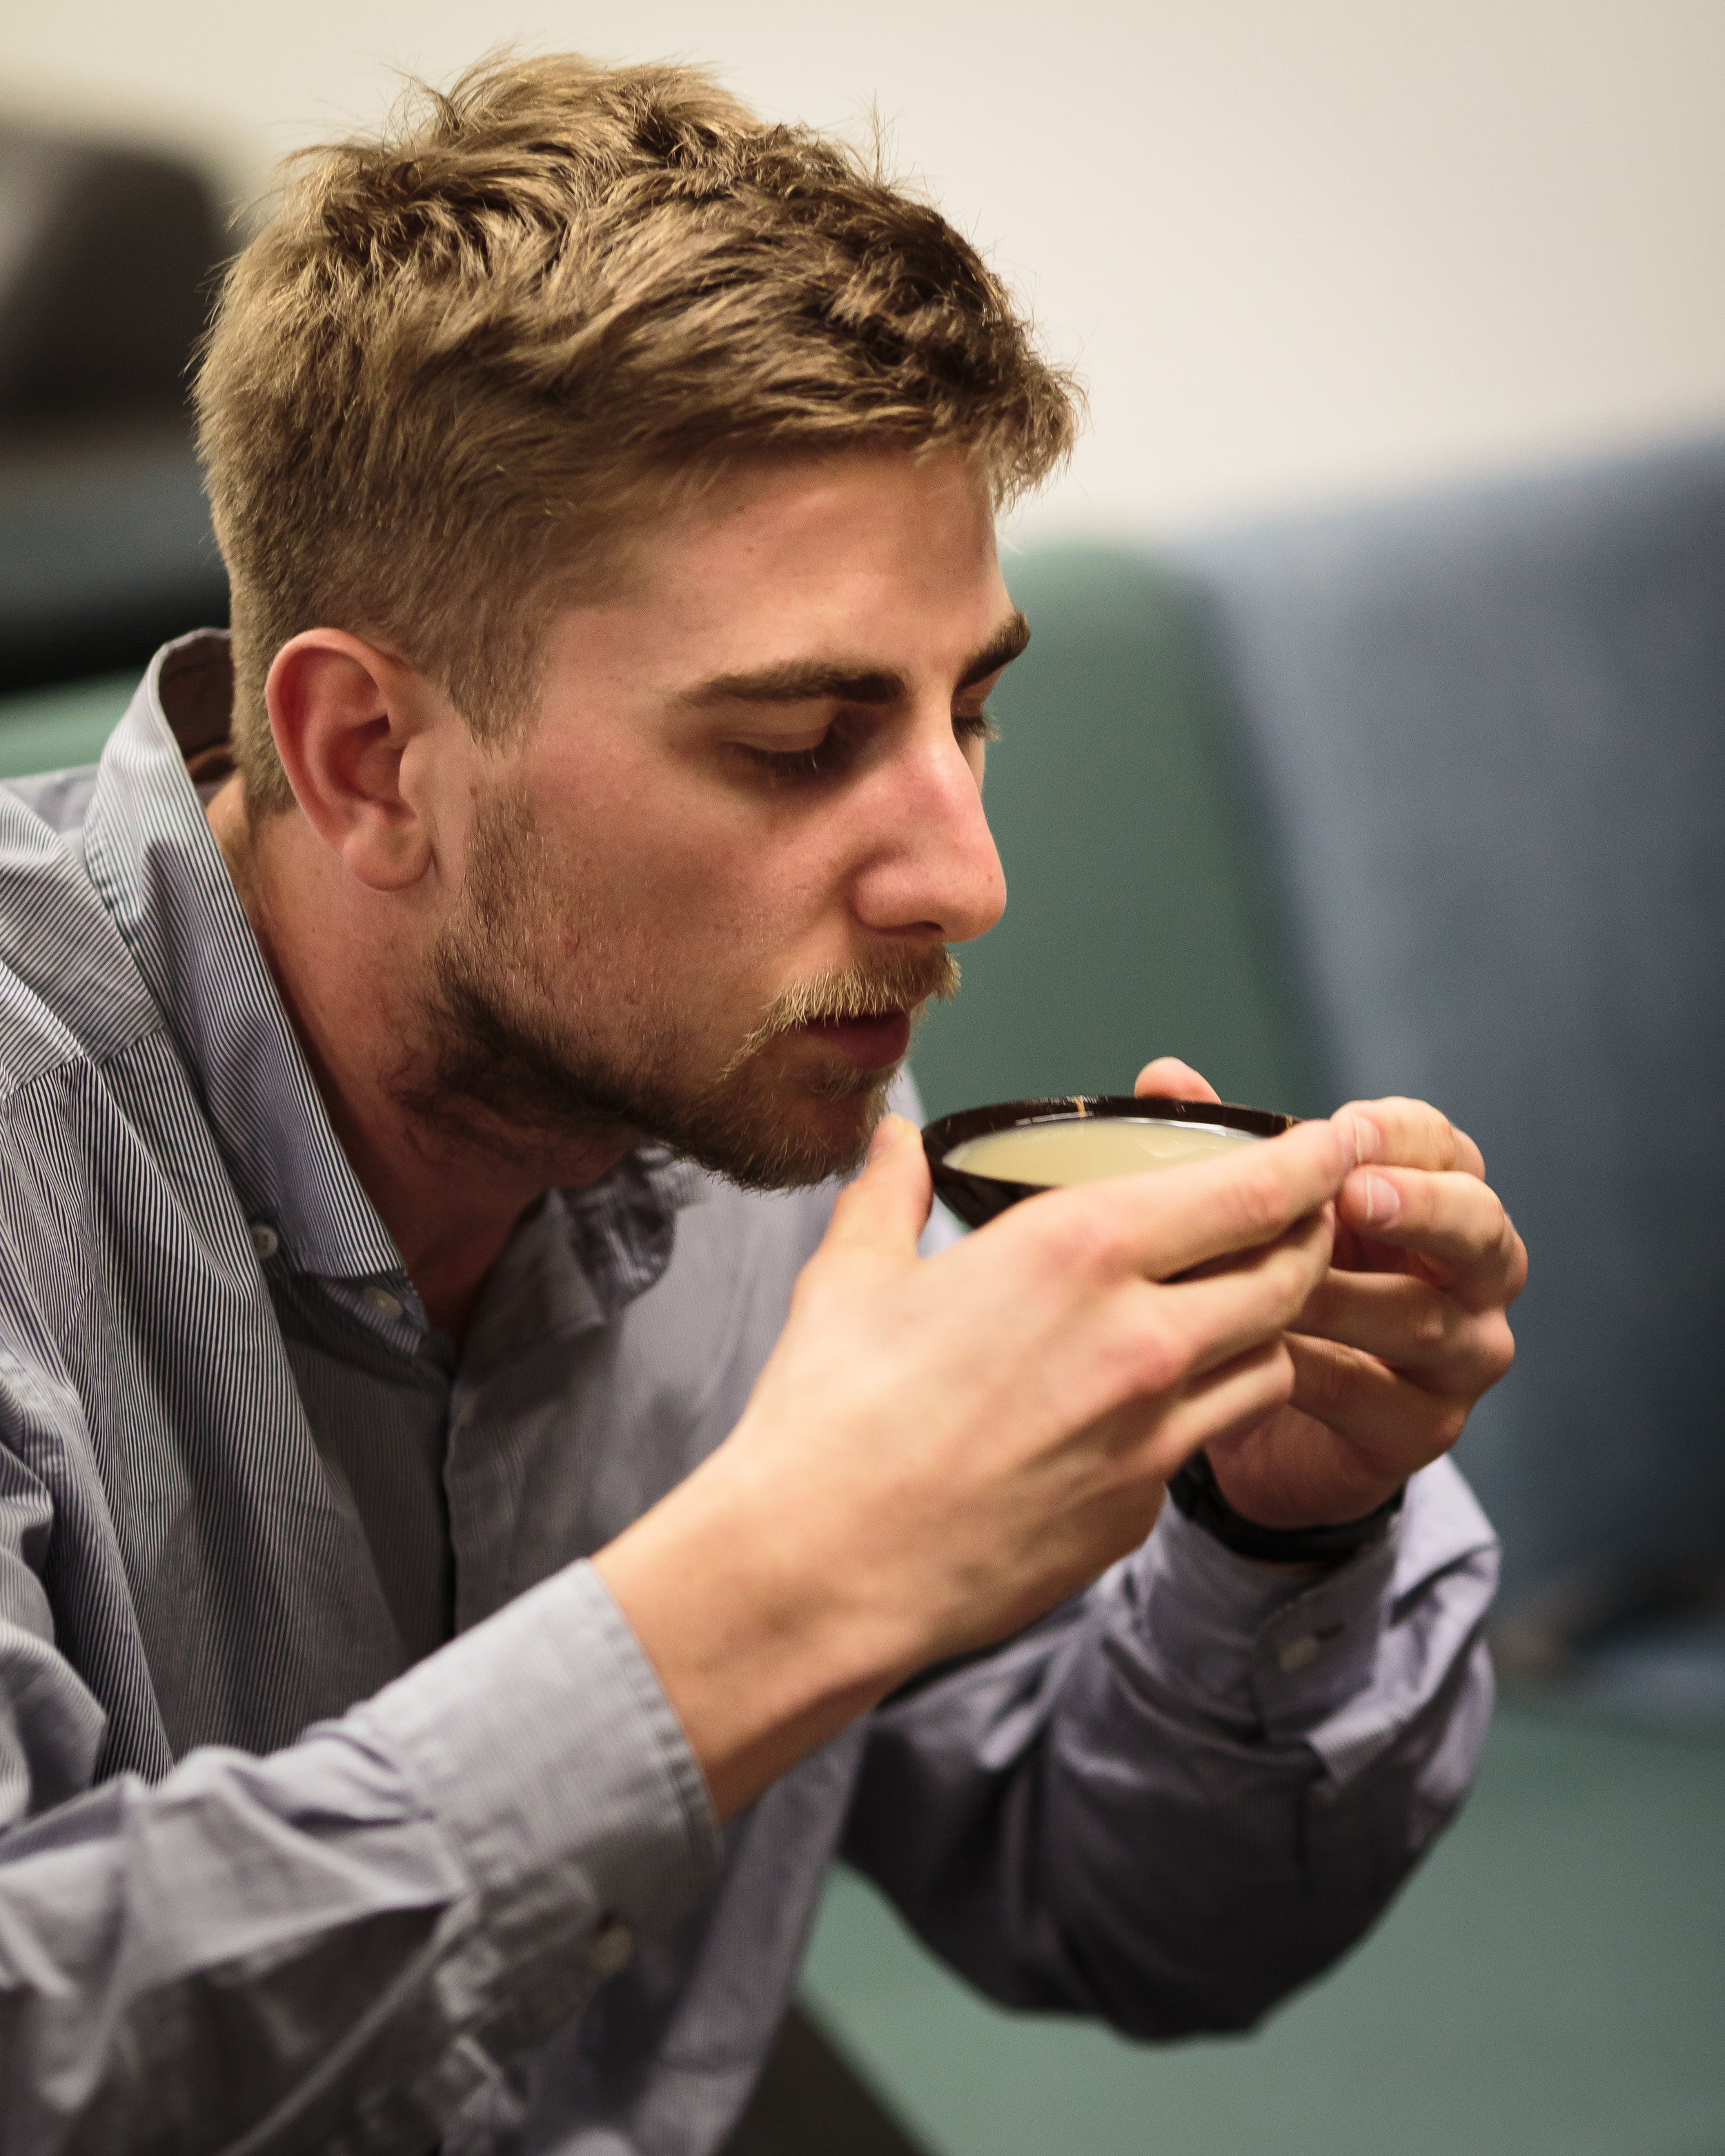 A kiwi journalist trying kava for the first time at the University of Auckland (photo by Todd Henry)